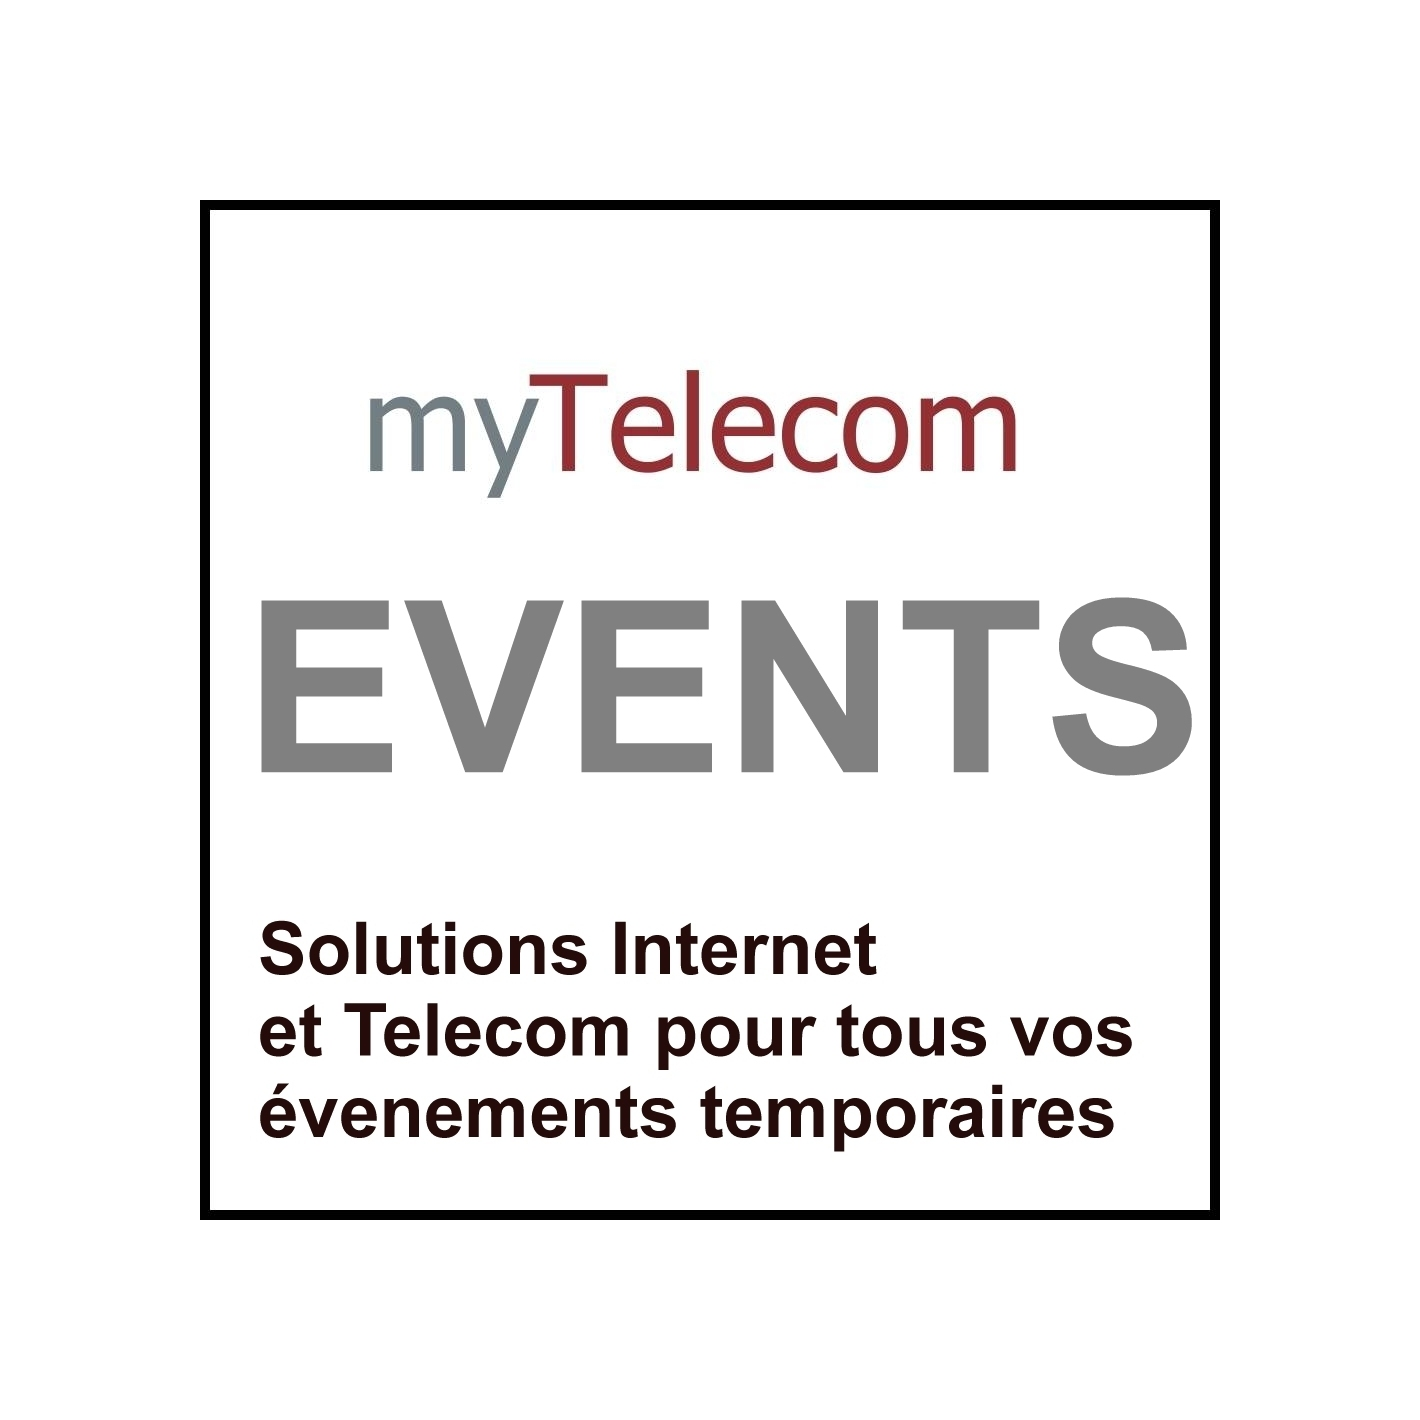 myTelecom Events